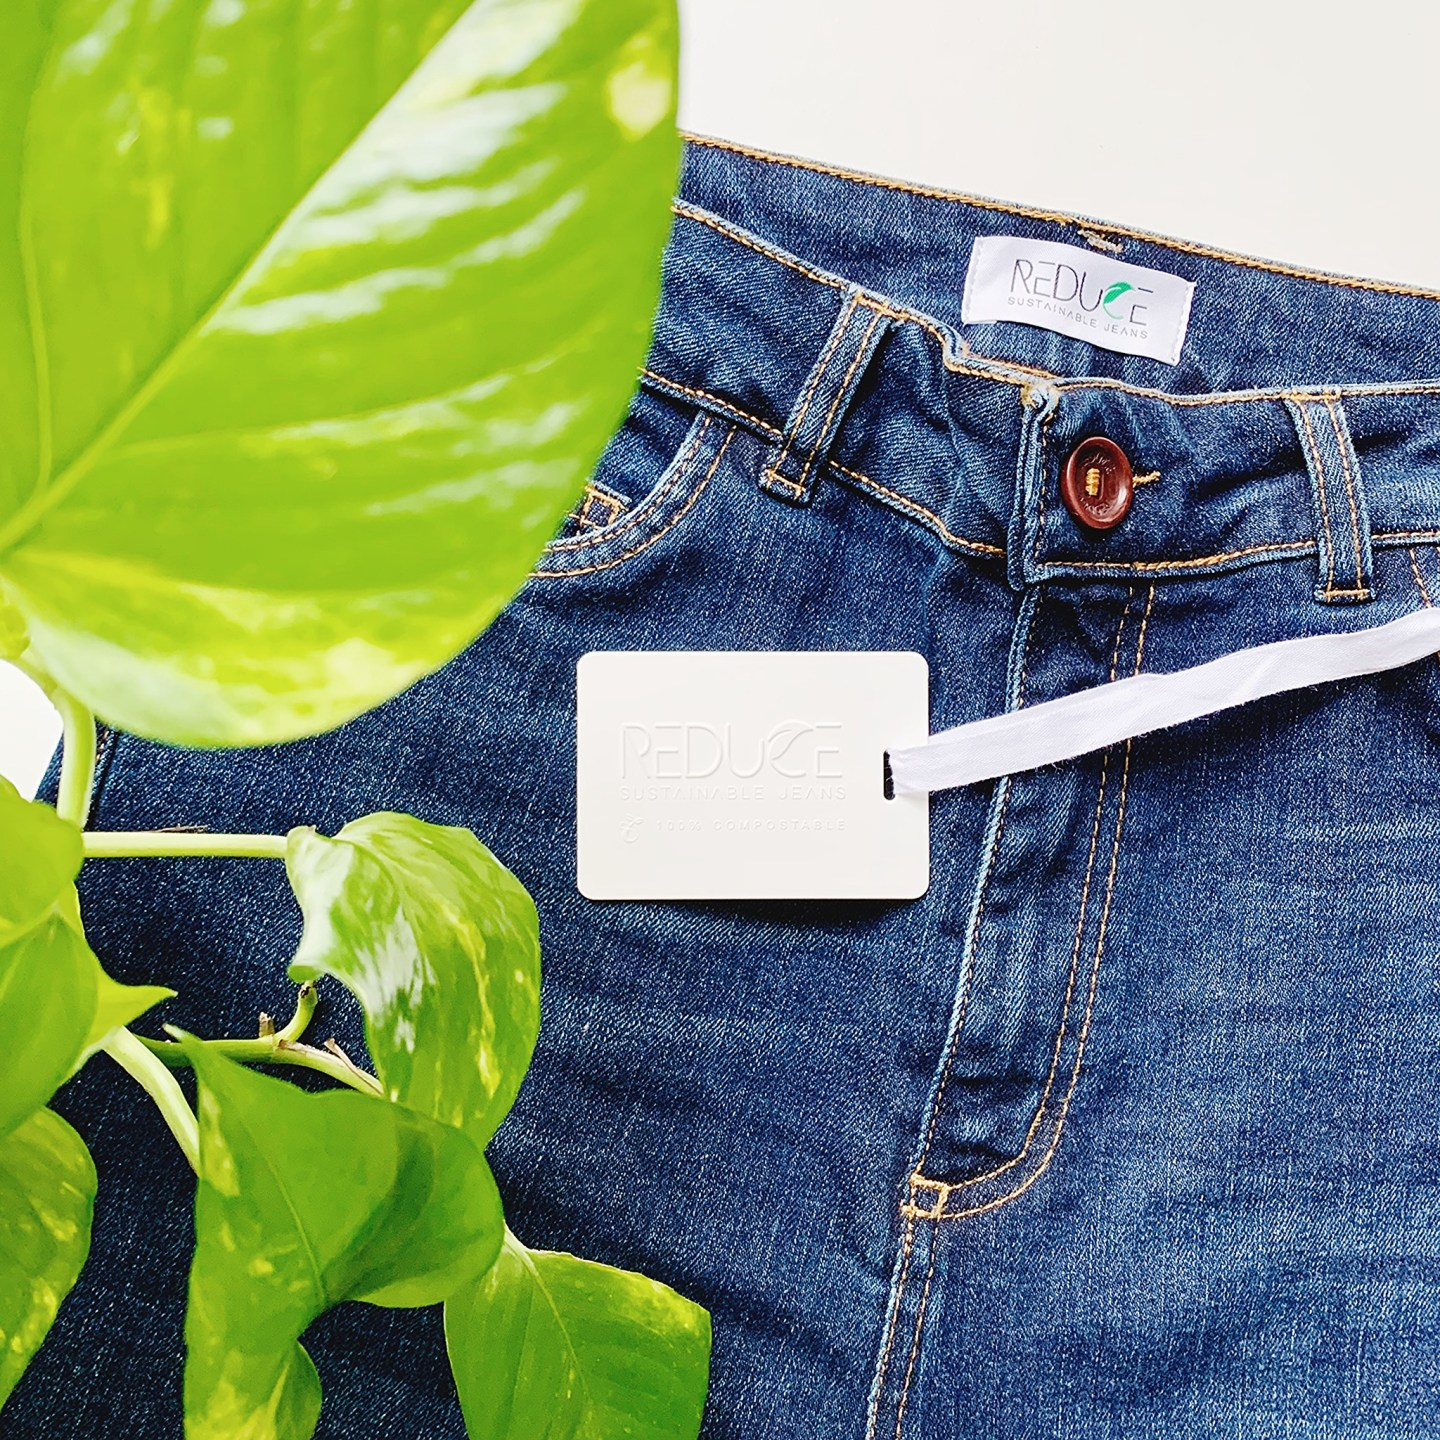 reduce-jeans-brand